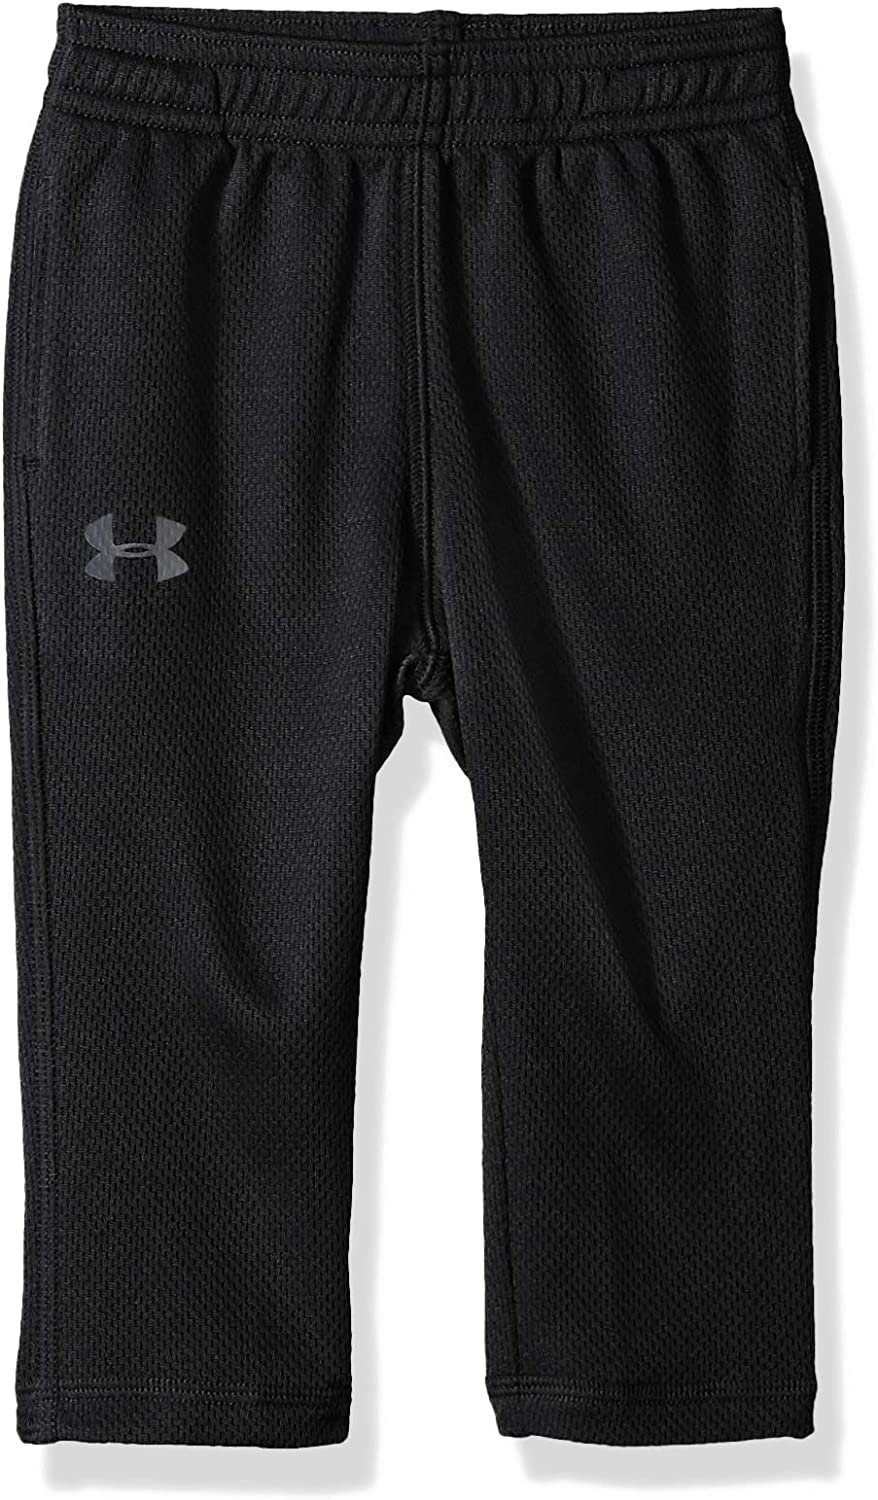 Max 84% OFF Under sold out Armour Boys' Pant Brute